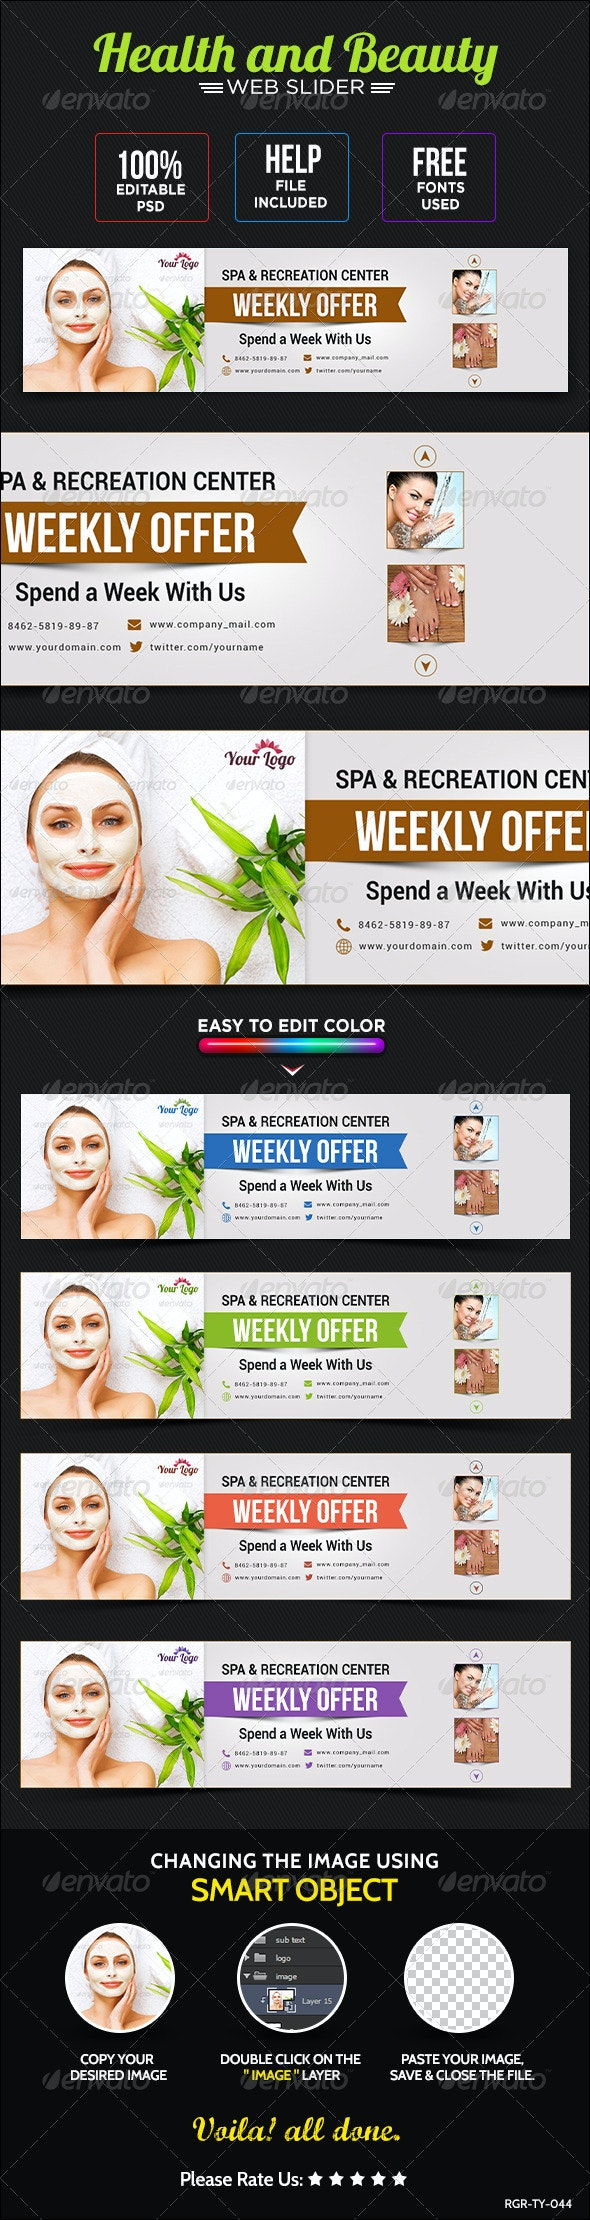 Health & Beauty Sliders - Sliders & Features Web Elements